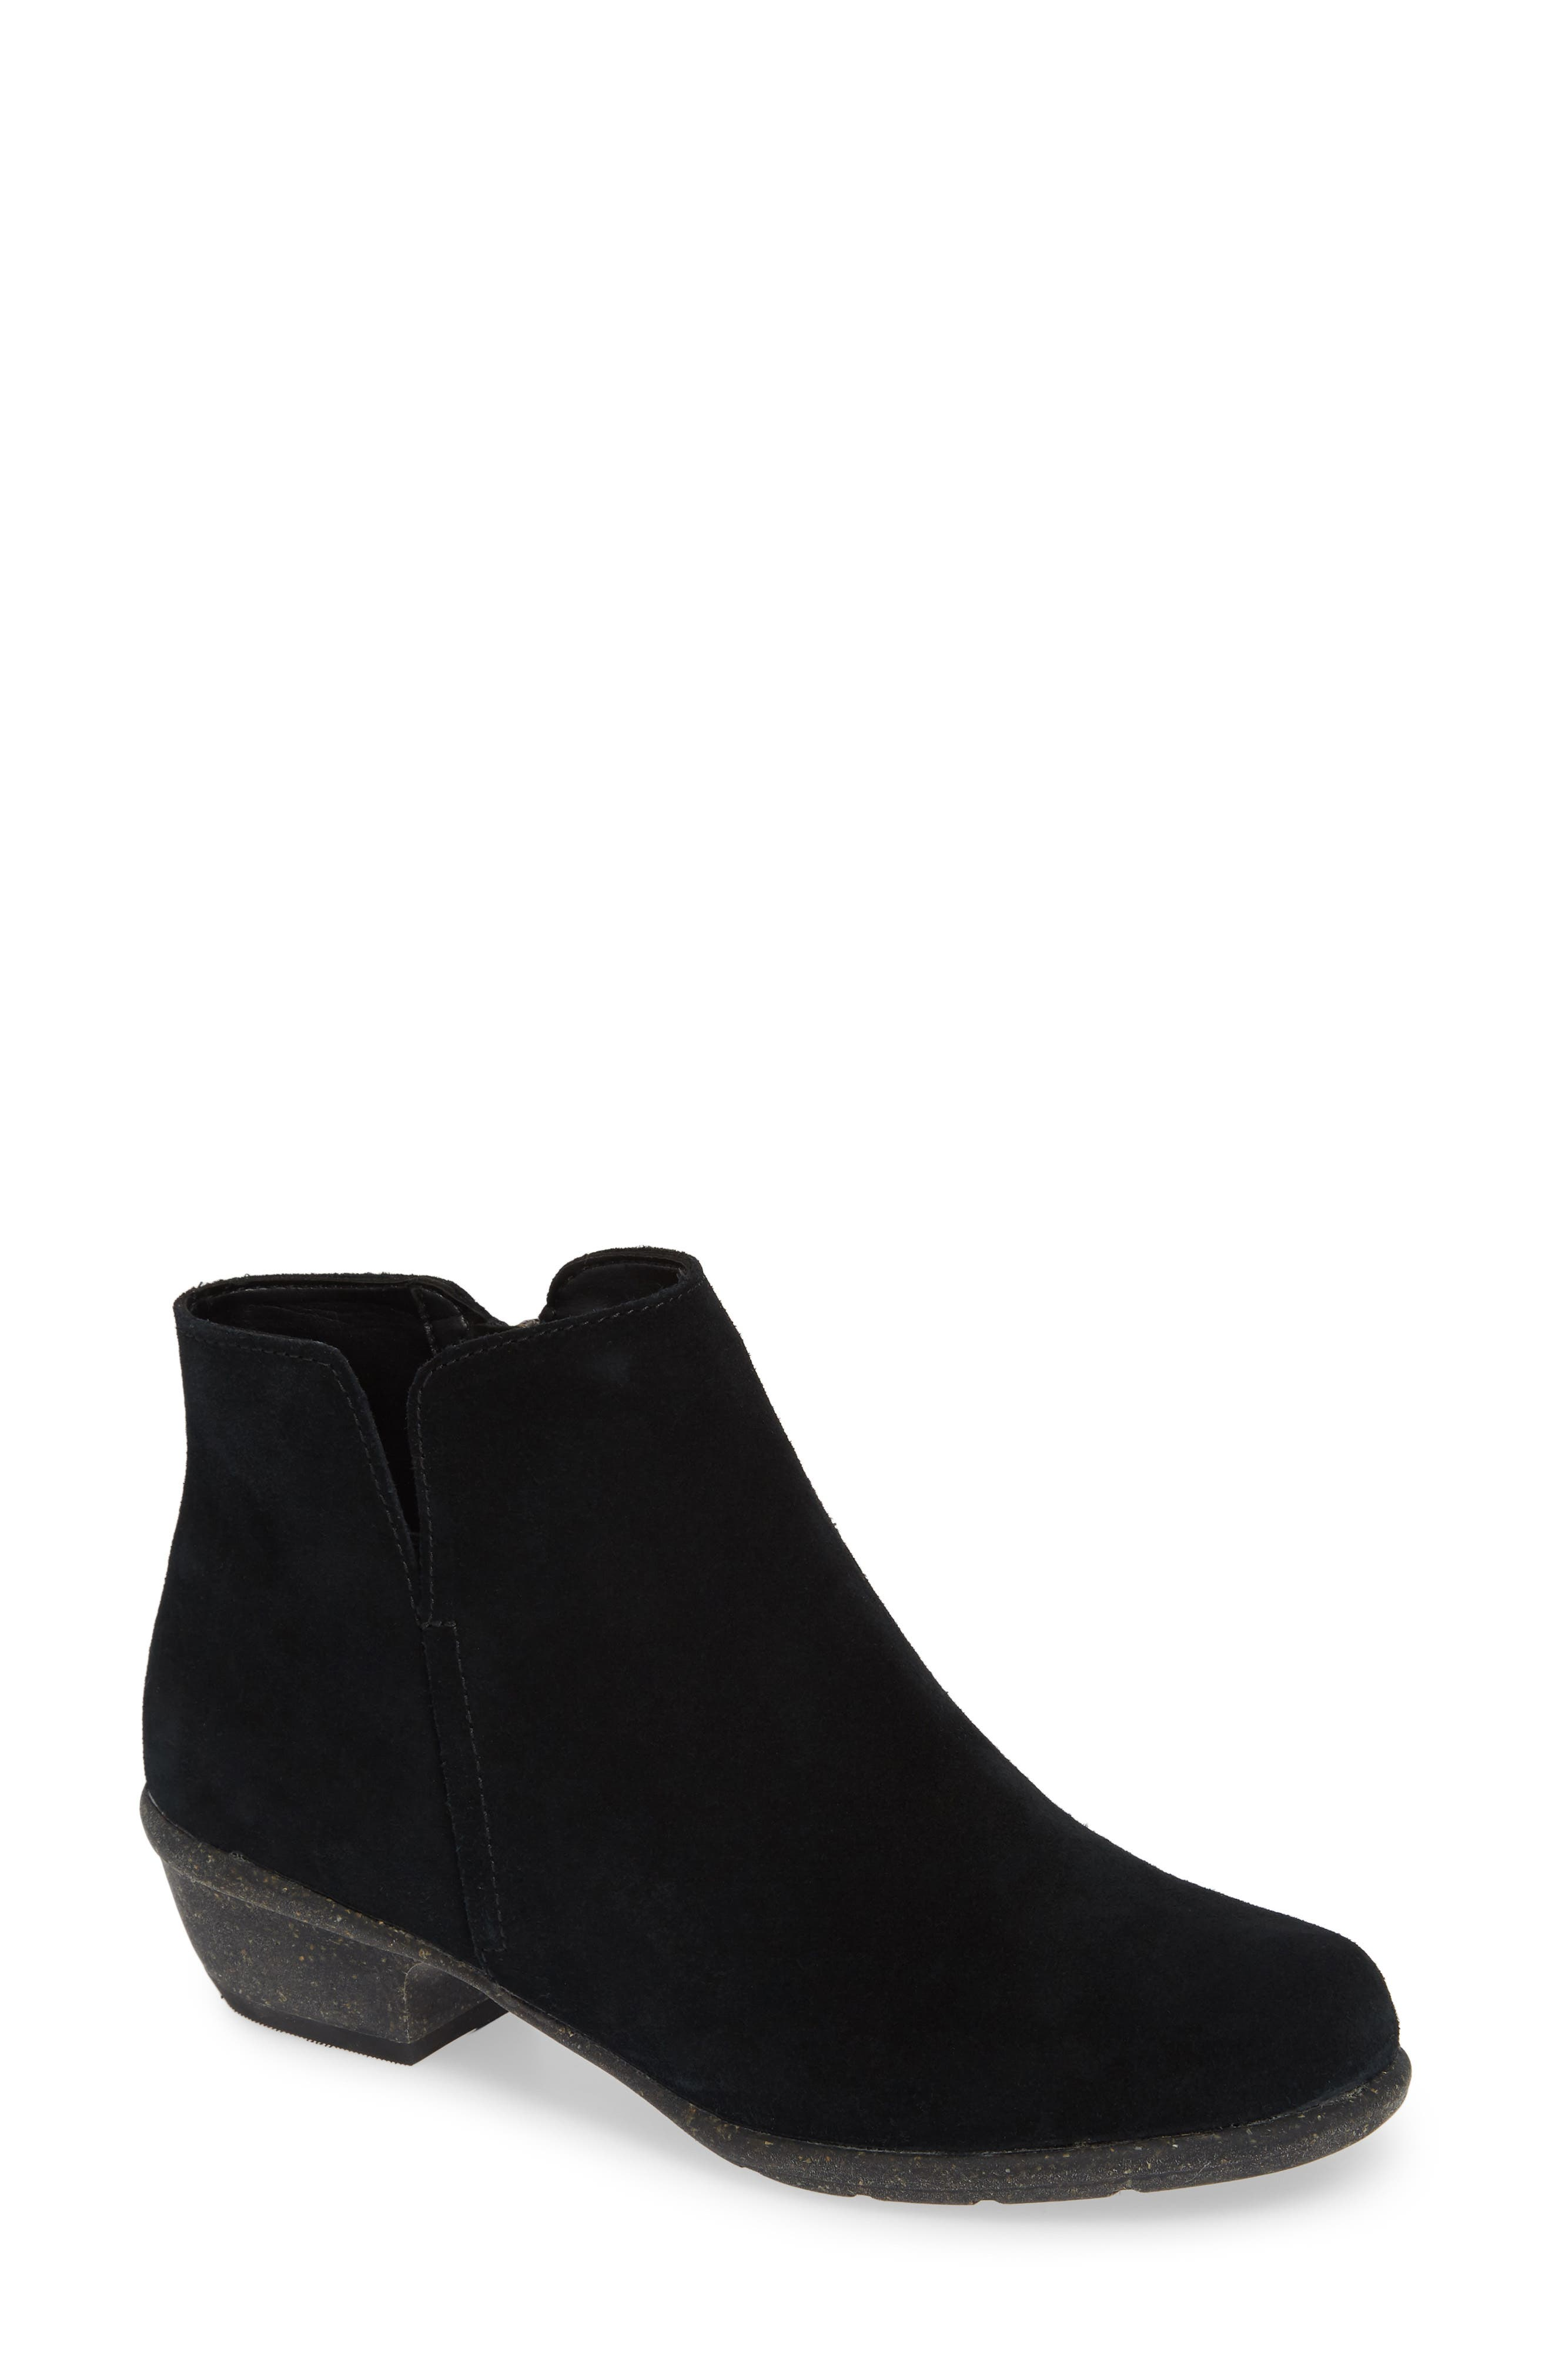 CLARKS<SUP>®</SUP>, Wilrose Frost Bootie, Main thumbnail 1, color, BLACK SUEDE